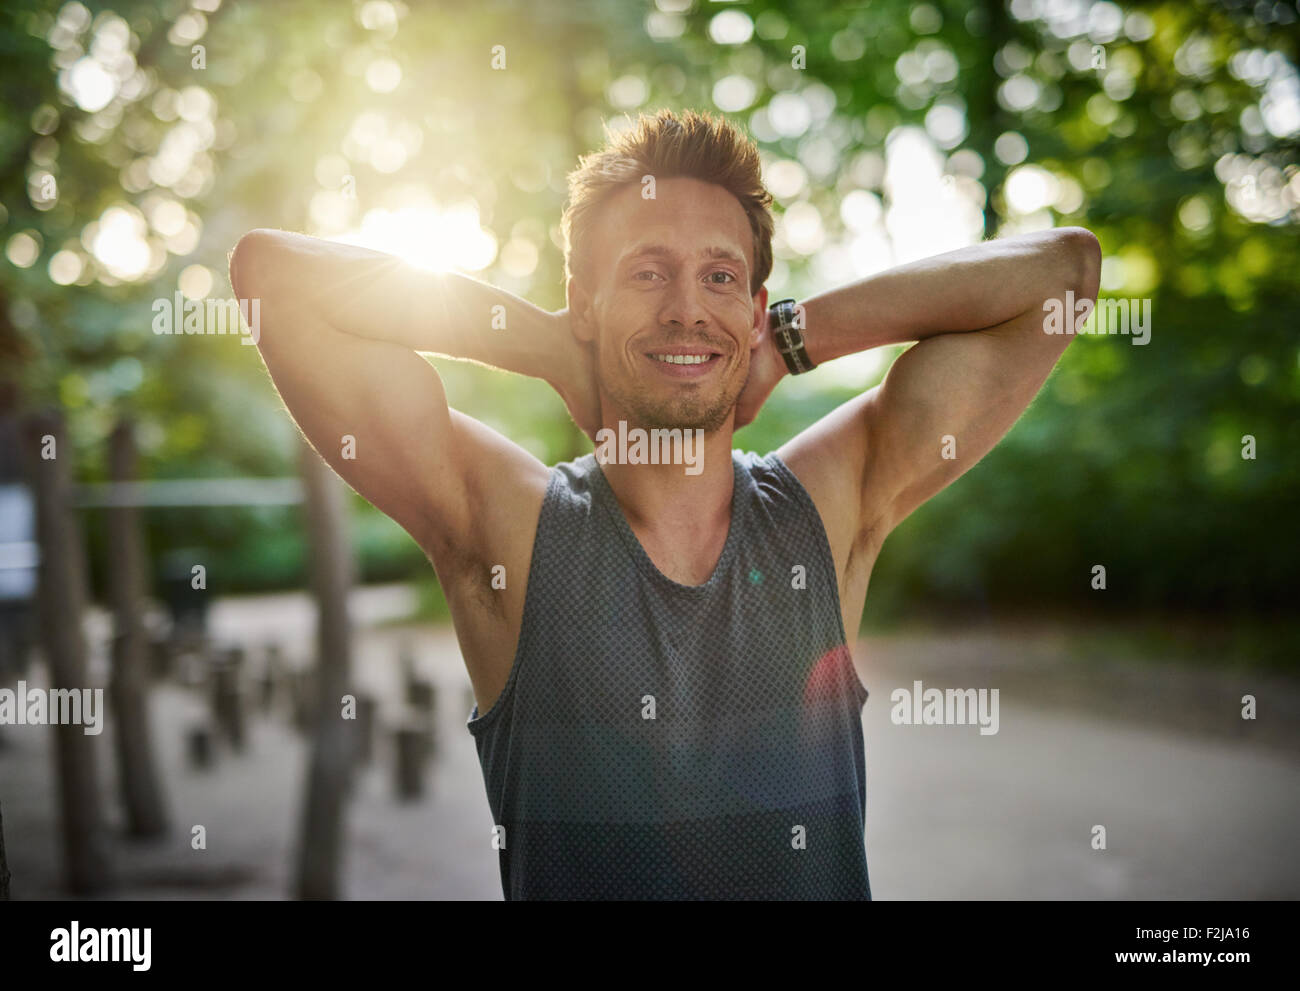 Half Body Shot of an Athletic Young Man at the Park Smiling at the Camera with Hands Behind his Head. - Stock Image